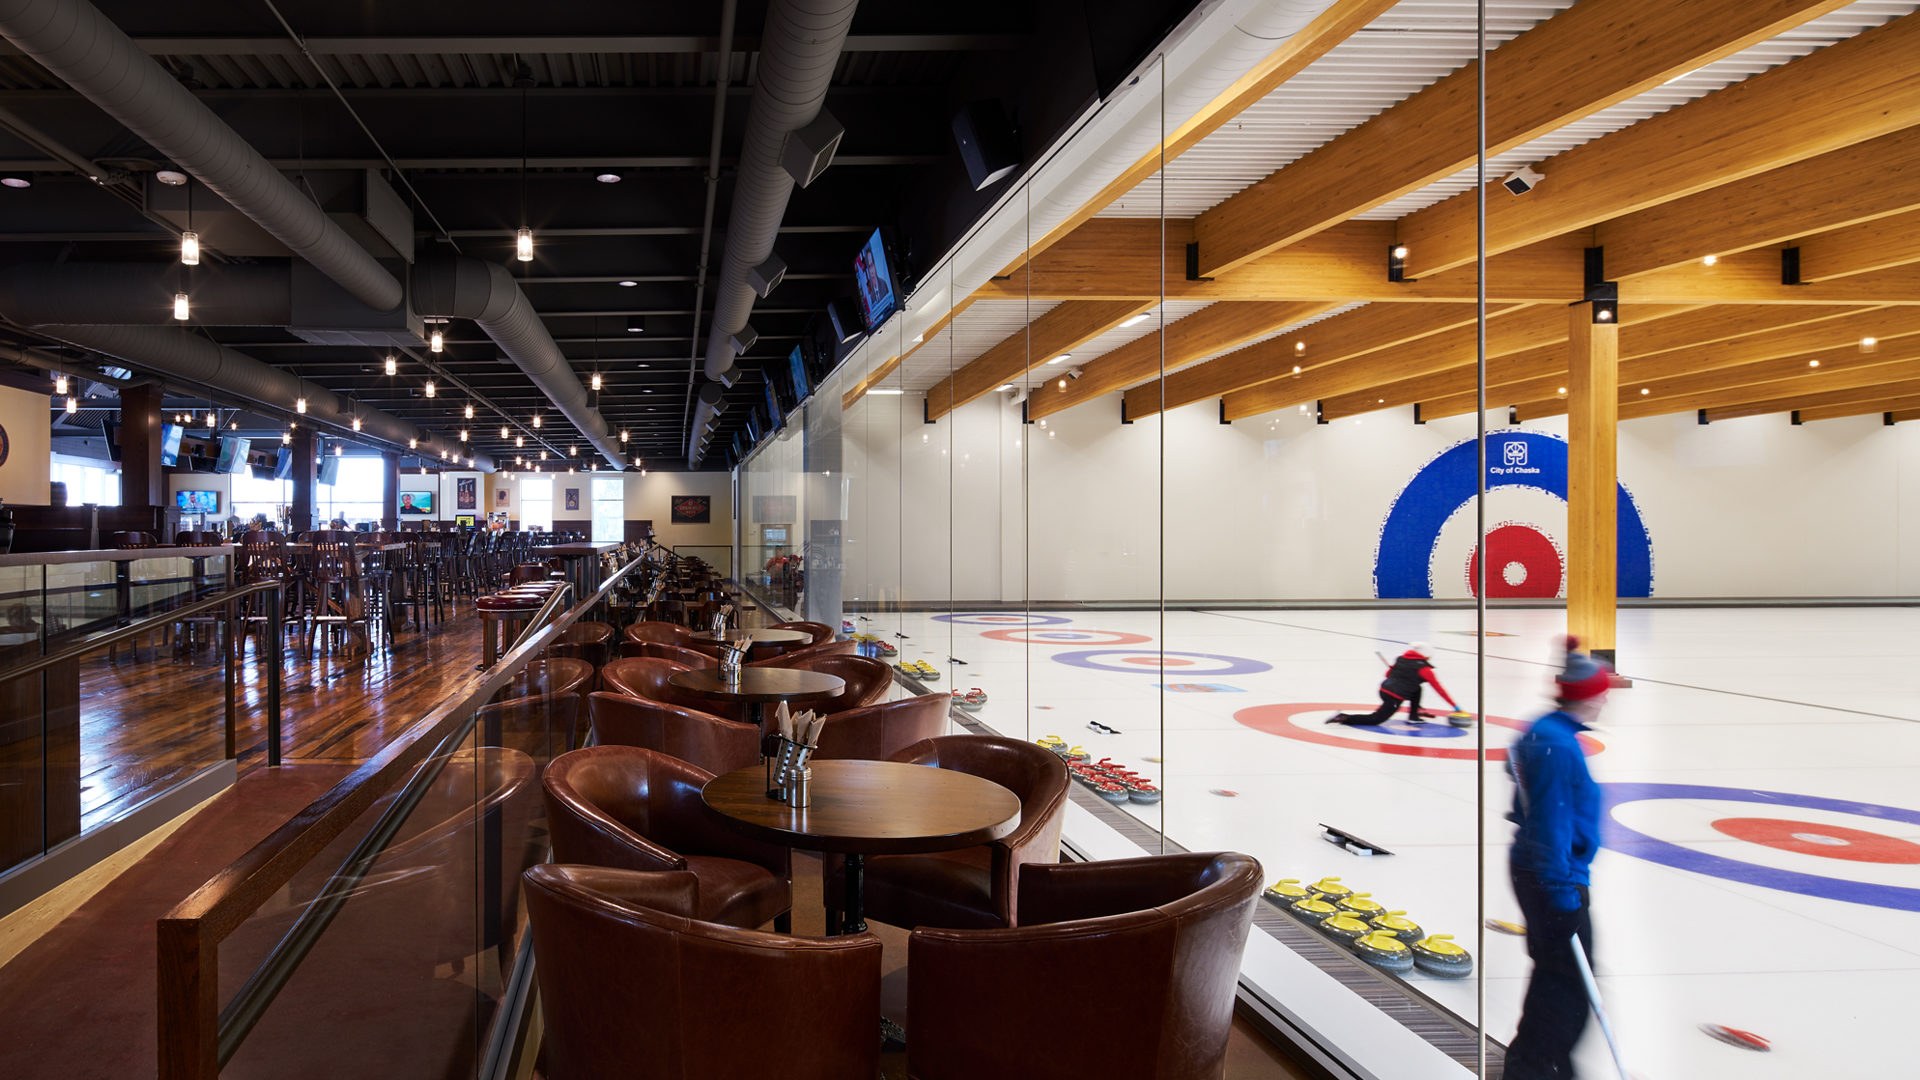 Chaska Firemens Park Curling and Event Center Interior View from Crooked Pint Ale House into the Curling Club